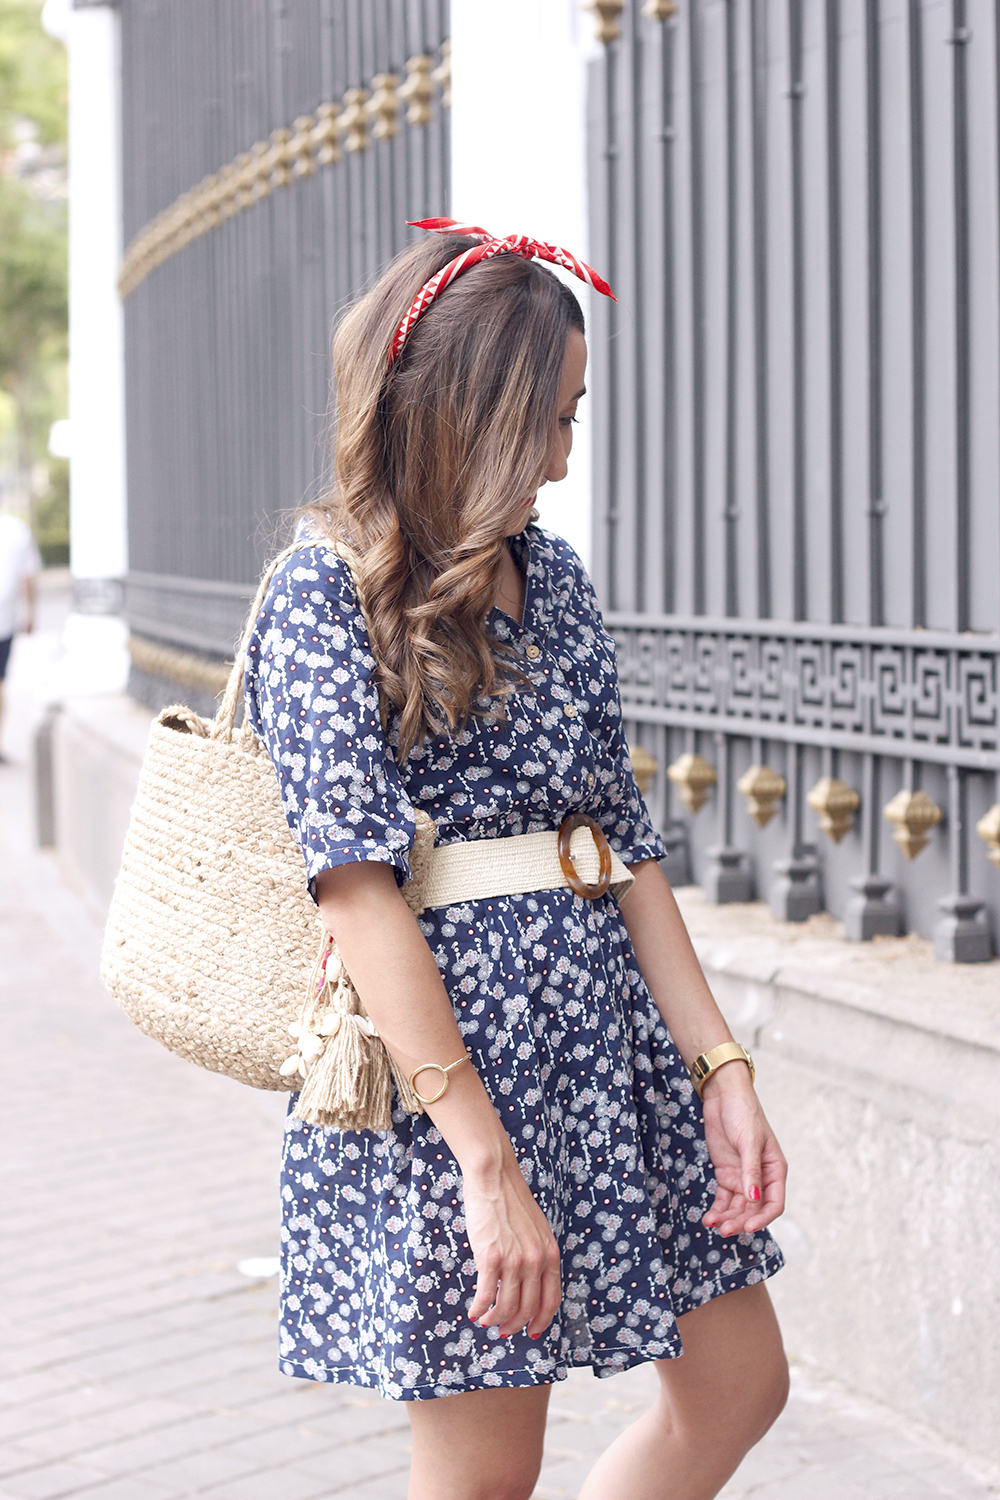 casual printed dress platfrom converse hair scarf street style outfit 20192